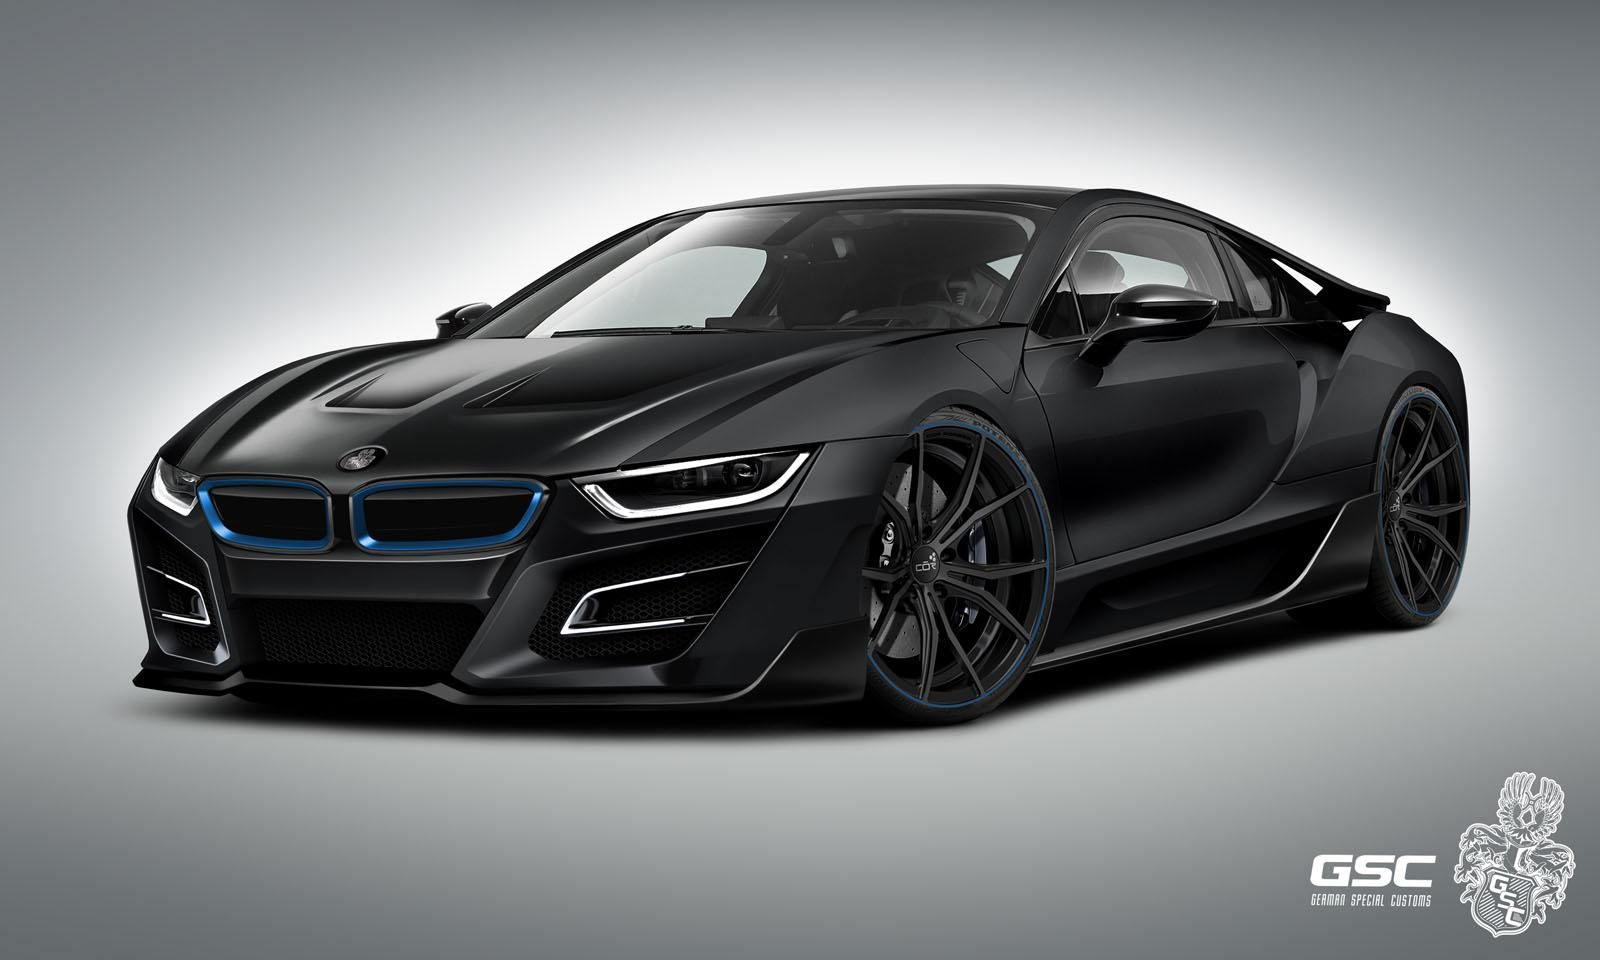 German Tuner Gives Bmw I8 An Itron Makeover Cars Pinterest